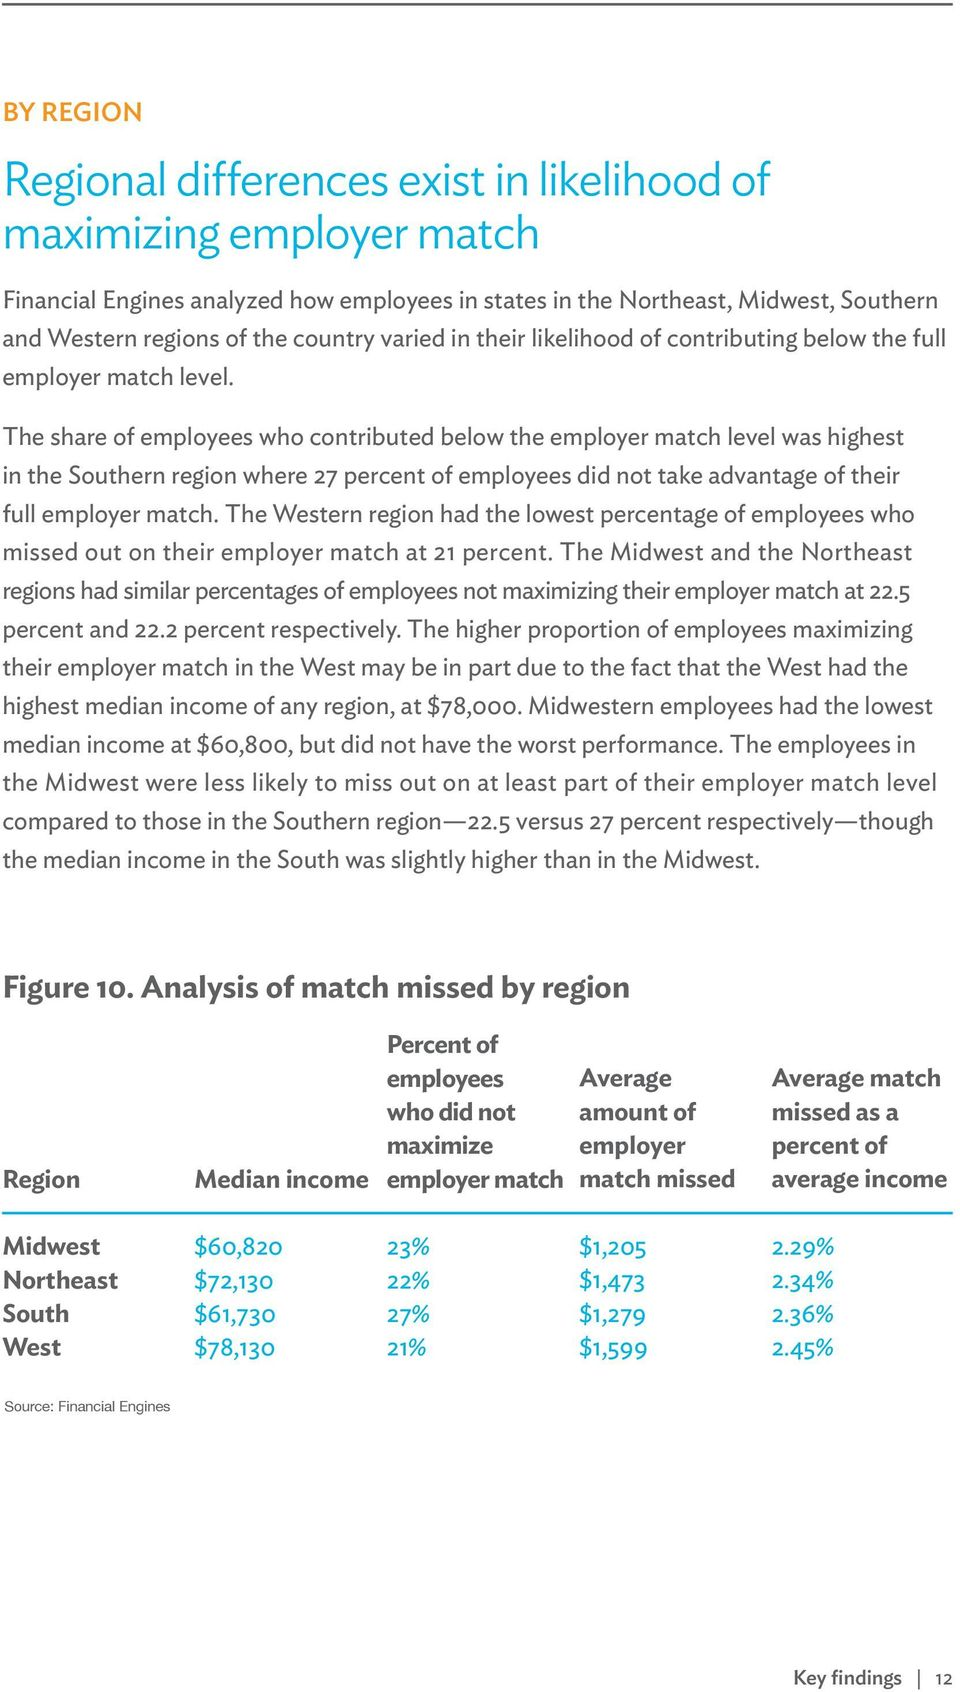 The share of employees who contributed below the employer match level was highest in the Southern region where 27 percent of employees did not take advantage of their full employer match.